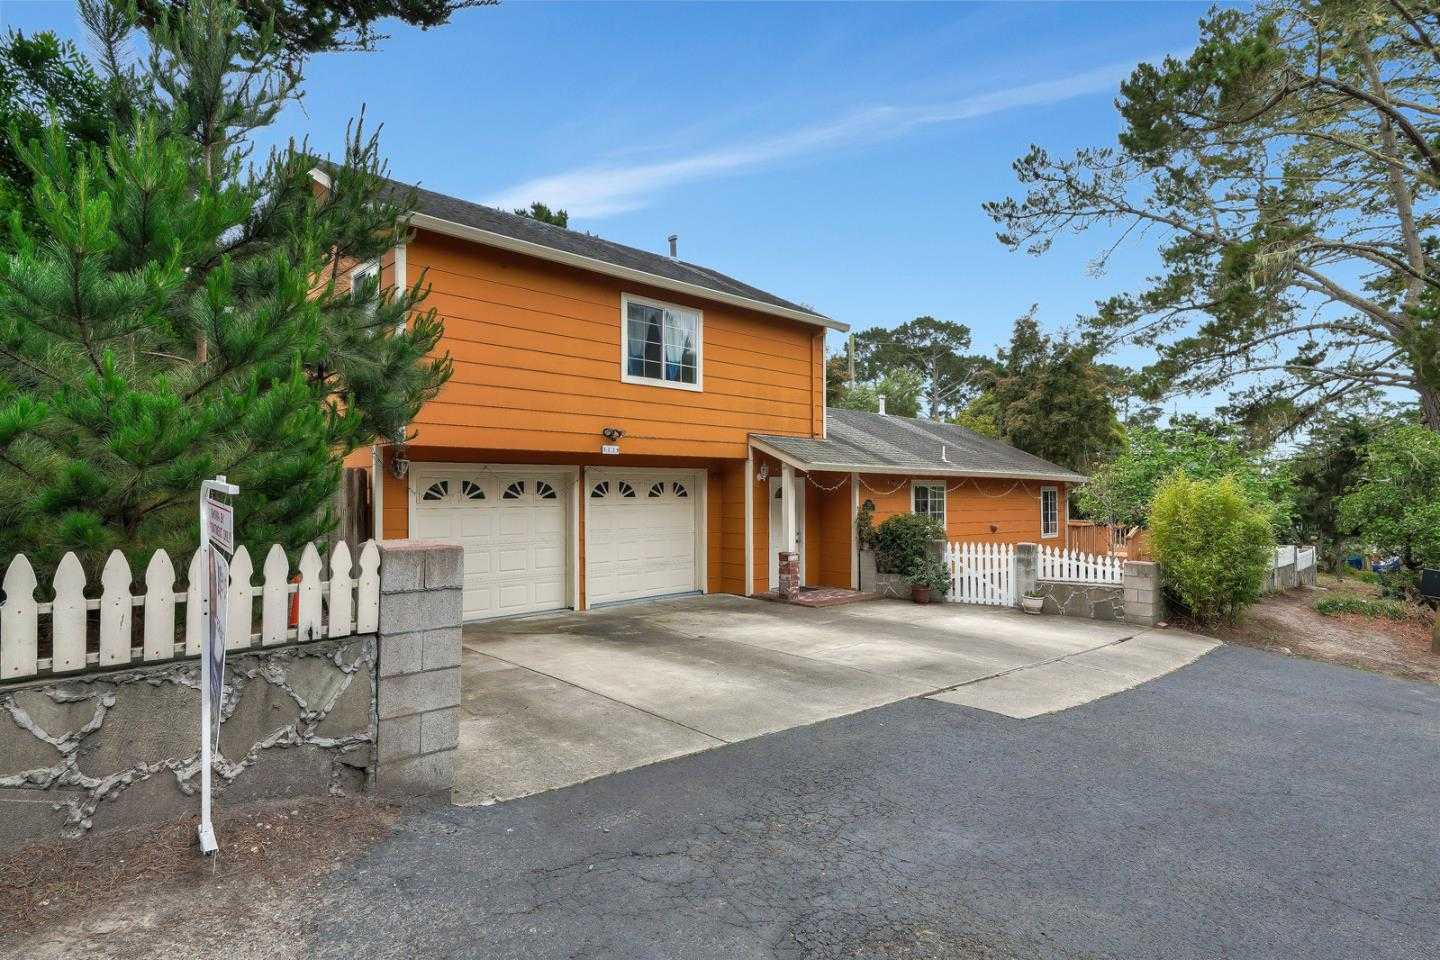 $950,000 - 4Br/2Ba -  for Sale in Pacific Grove